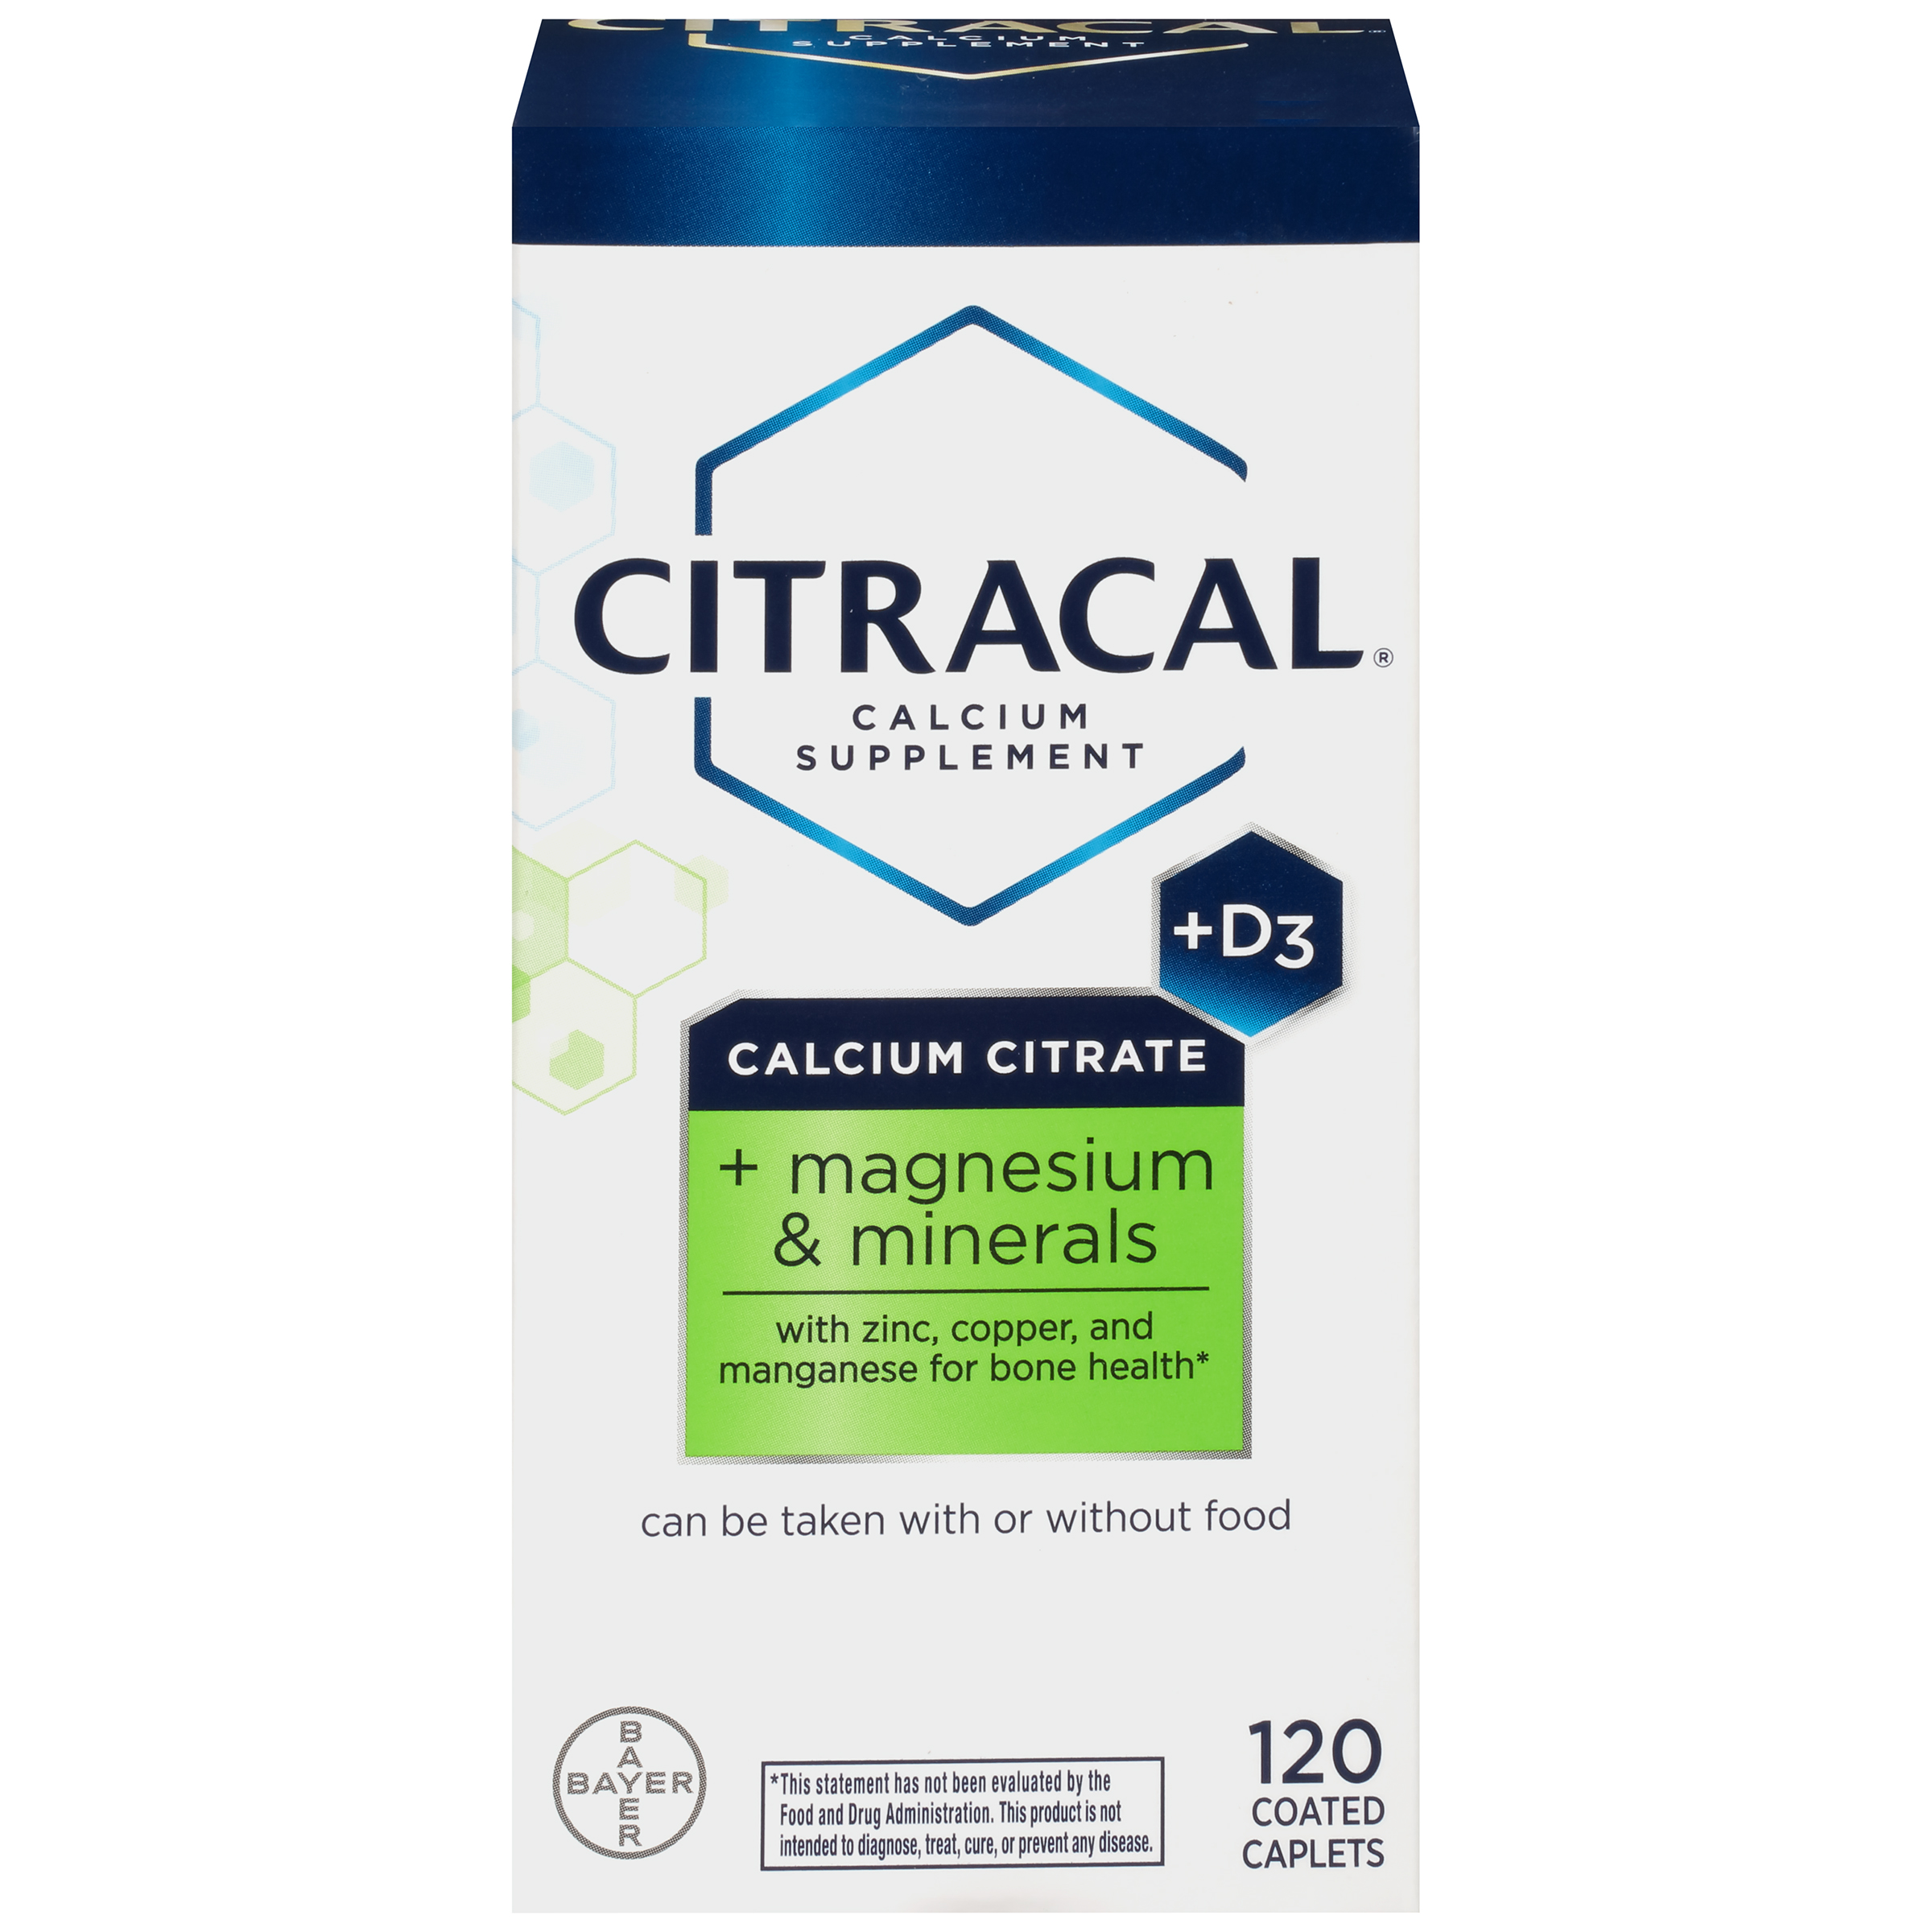 Citracal Calcium Citrate+Vitamin D3 with Magnesium Tablets, 120 Ct